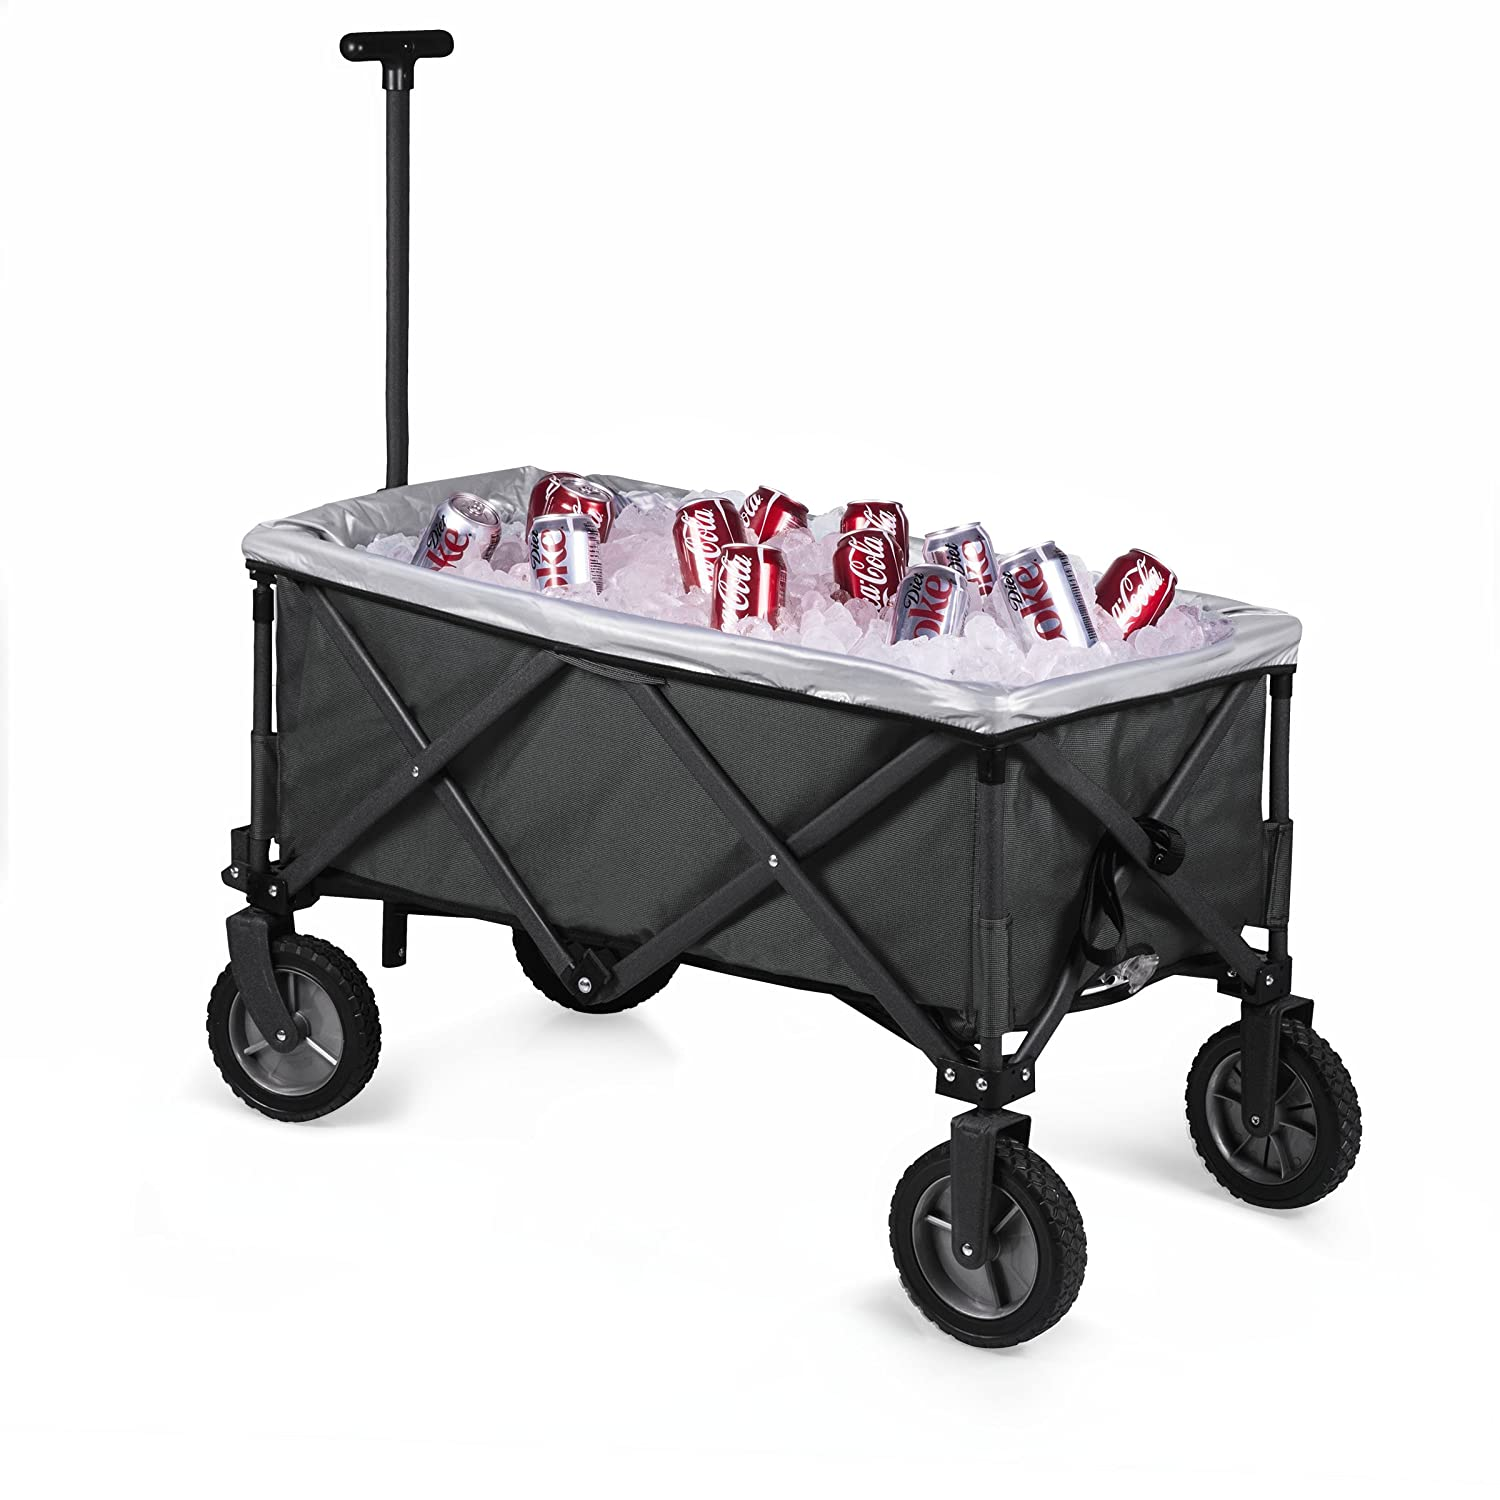 ONIVA – a Picnic Time brand Collapsible Adventure Wagon Elite